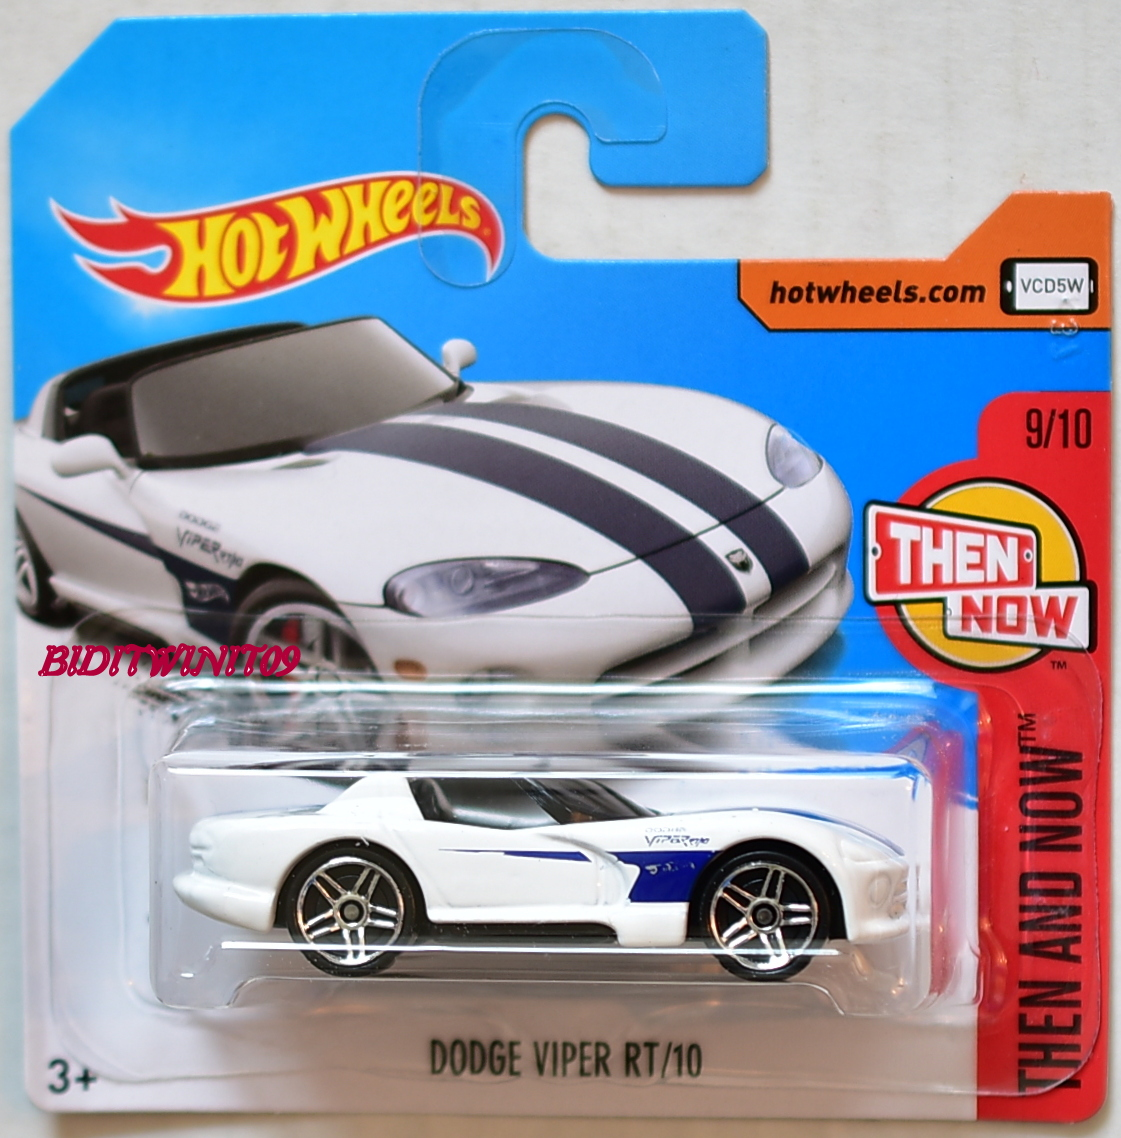 HOT WHEELS 2018 THEN AND NOW DODGE VIPER RT/10 #9/10 WHITE SHORT CARD